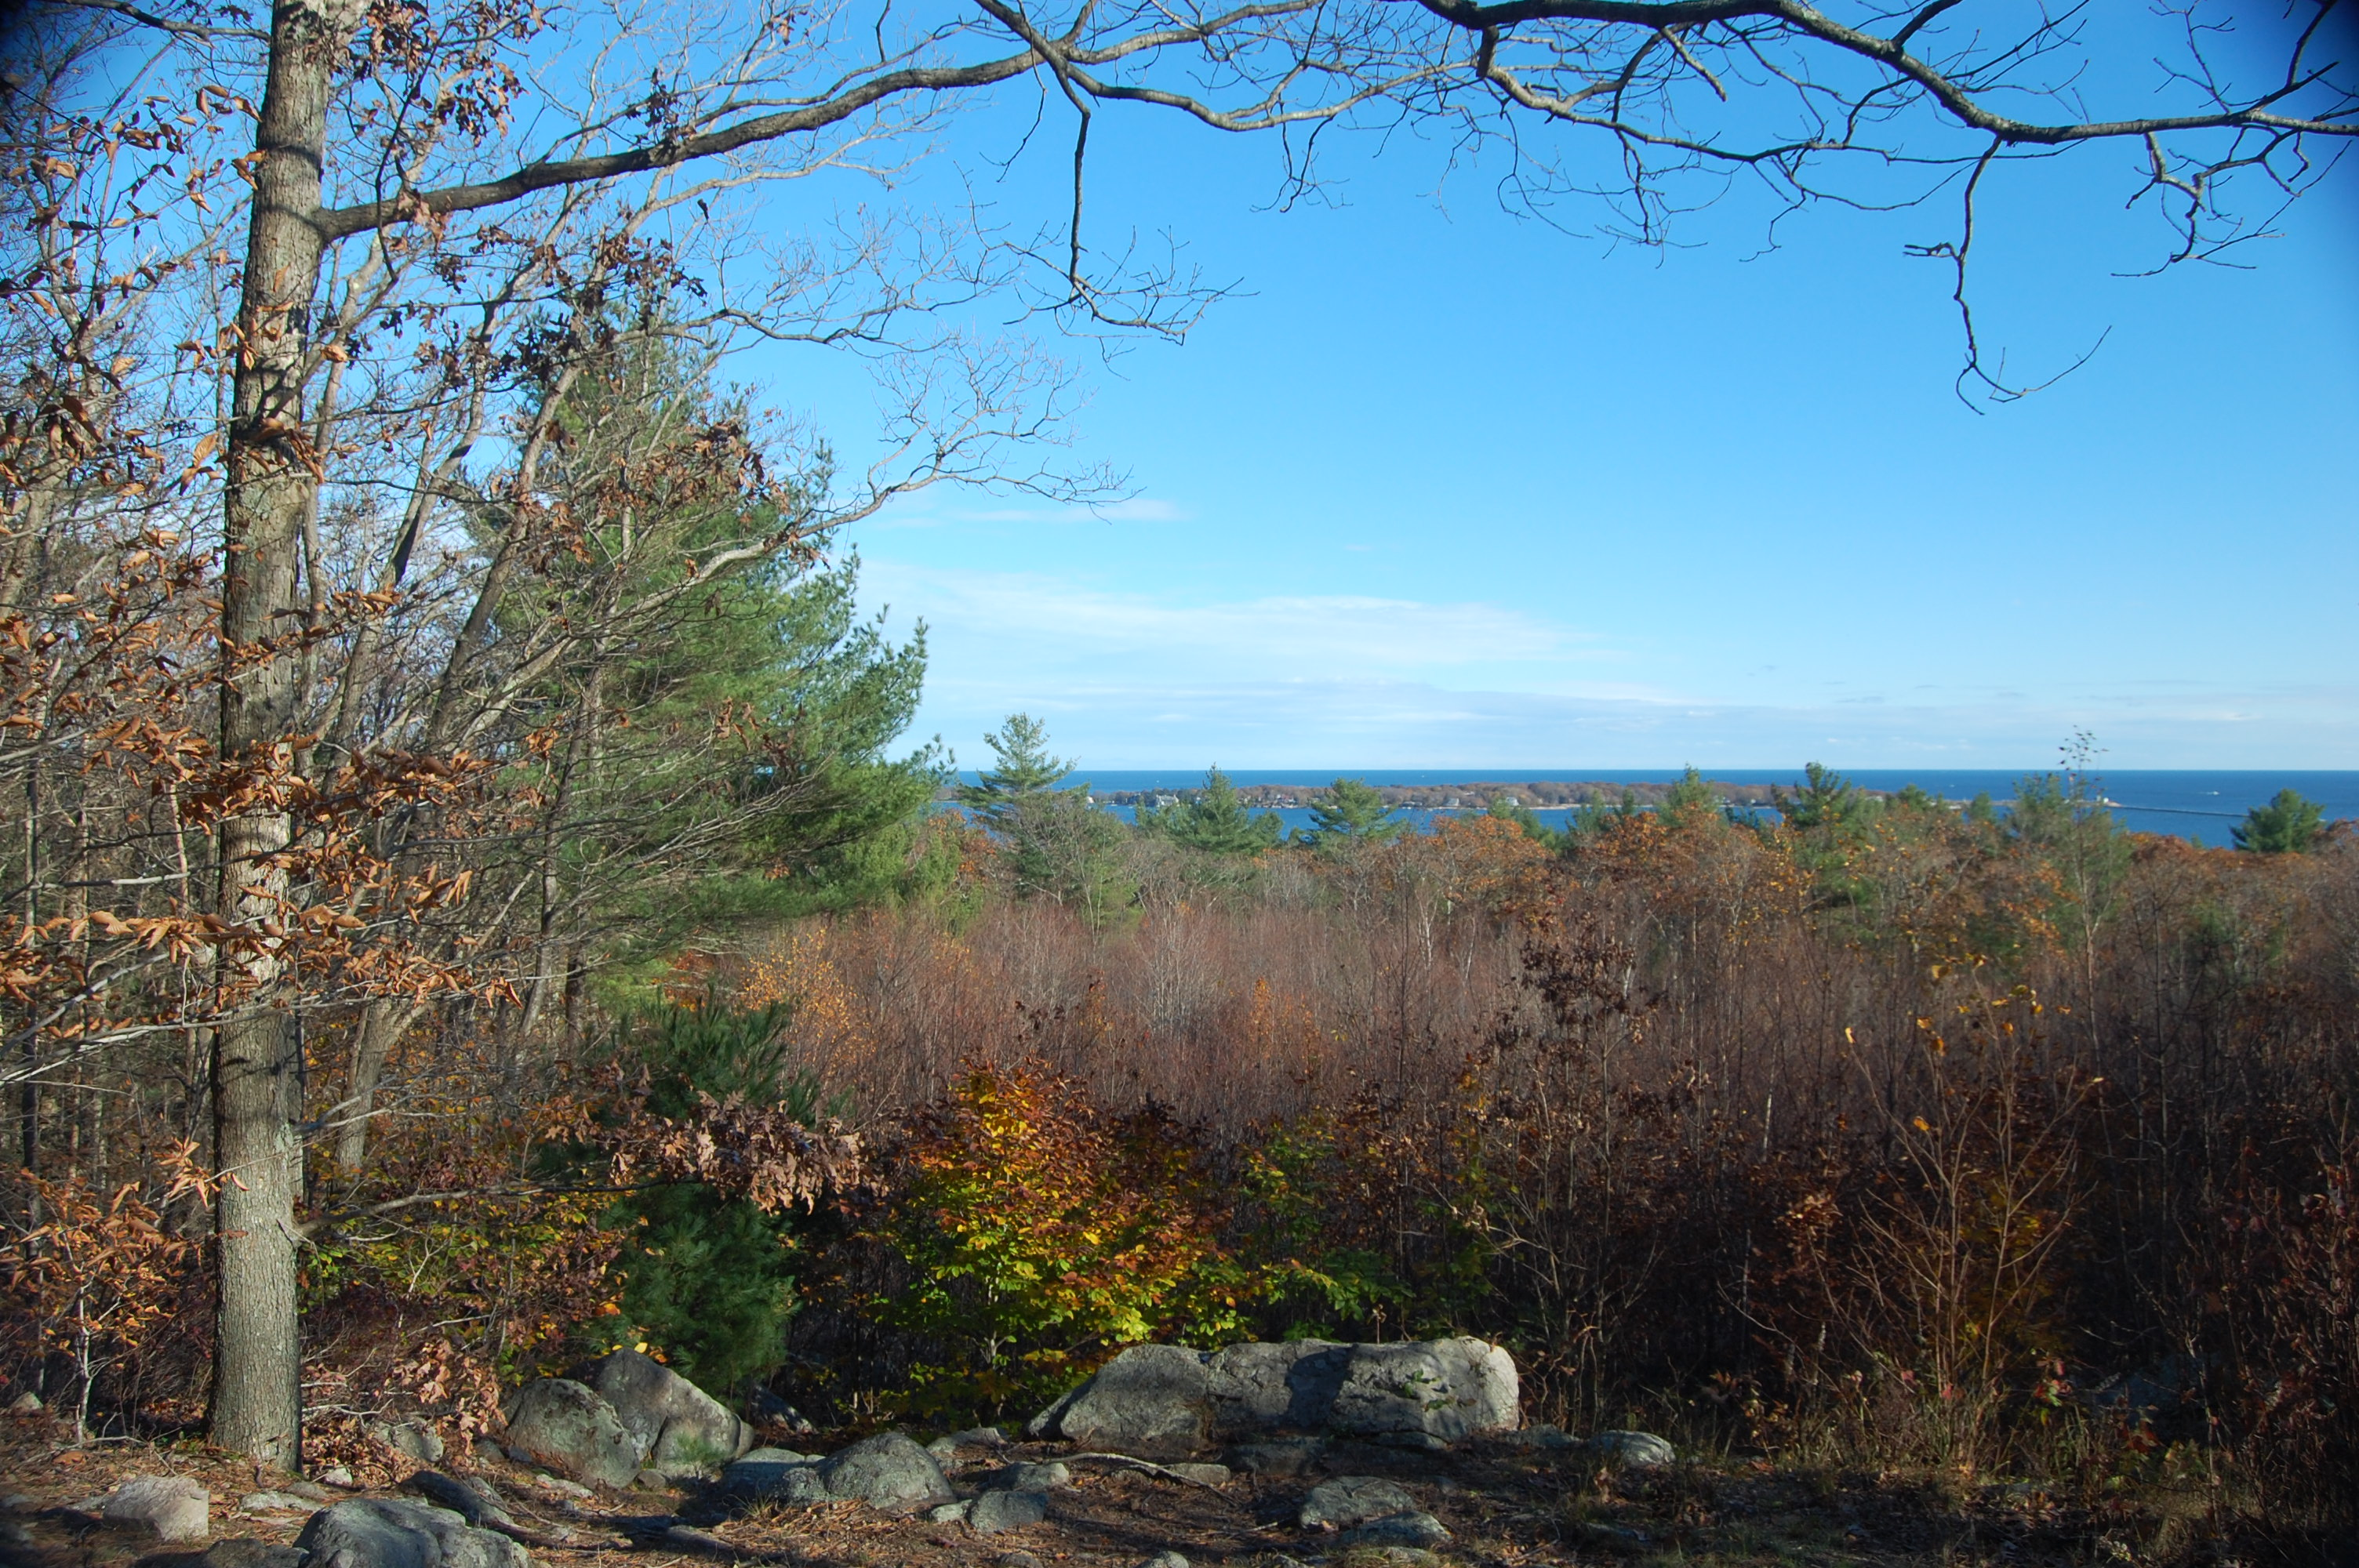 Ravenswood Park scenic overlook in Gloucester, MA